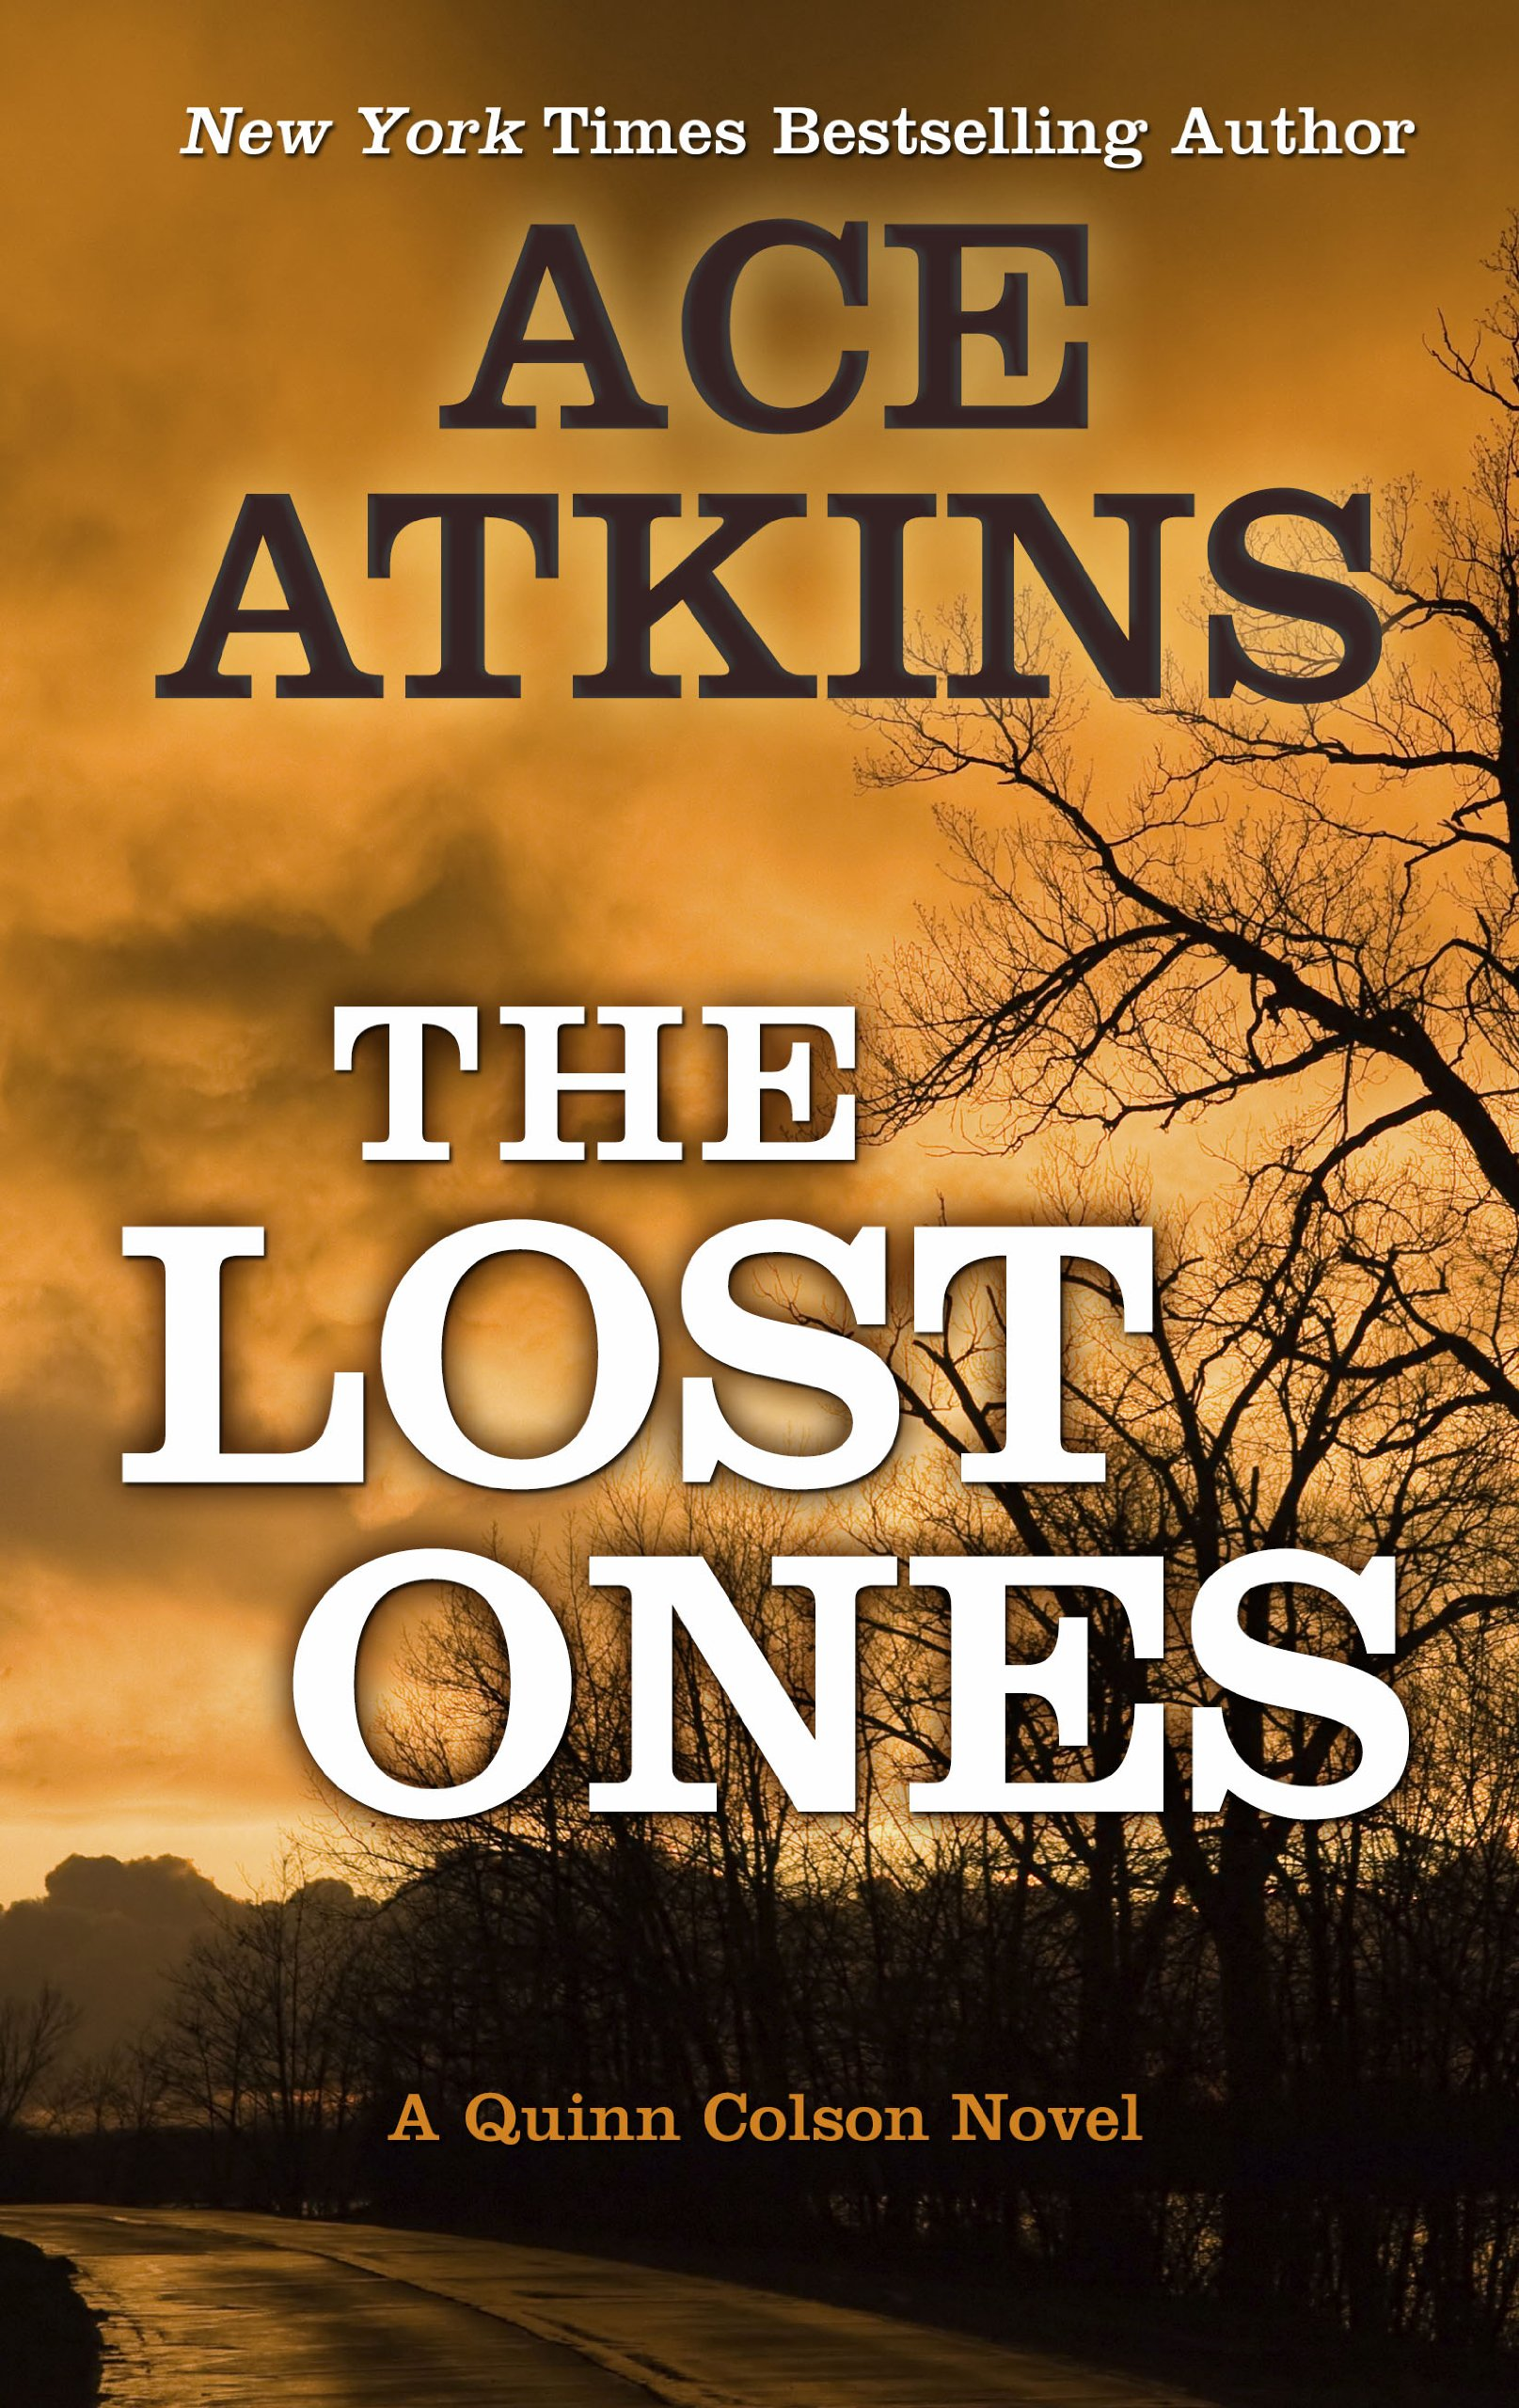 Amazon.com: The Lost Ones (A Quinn Colson Novel) (9781410464910): Ace Atkins:  Books